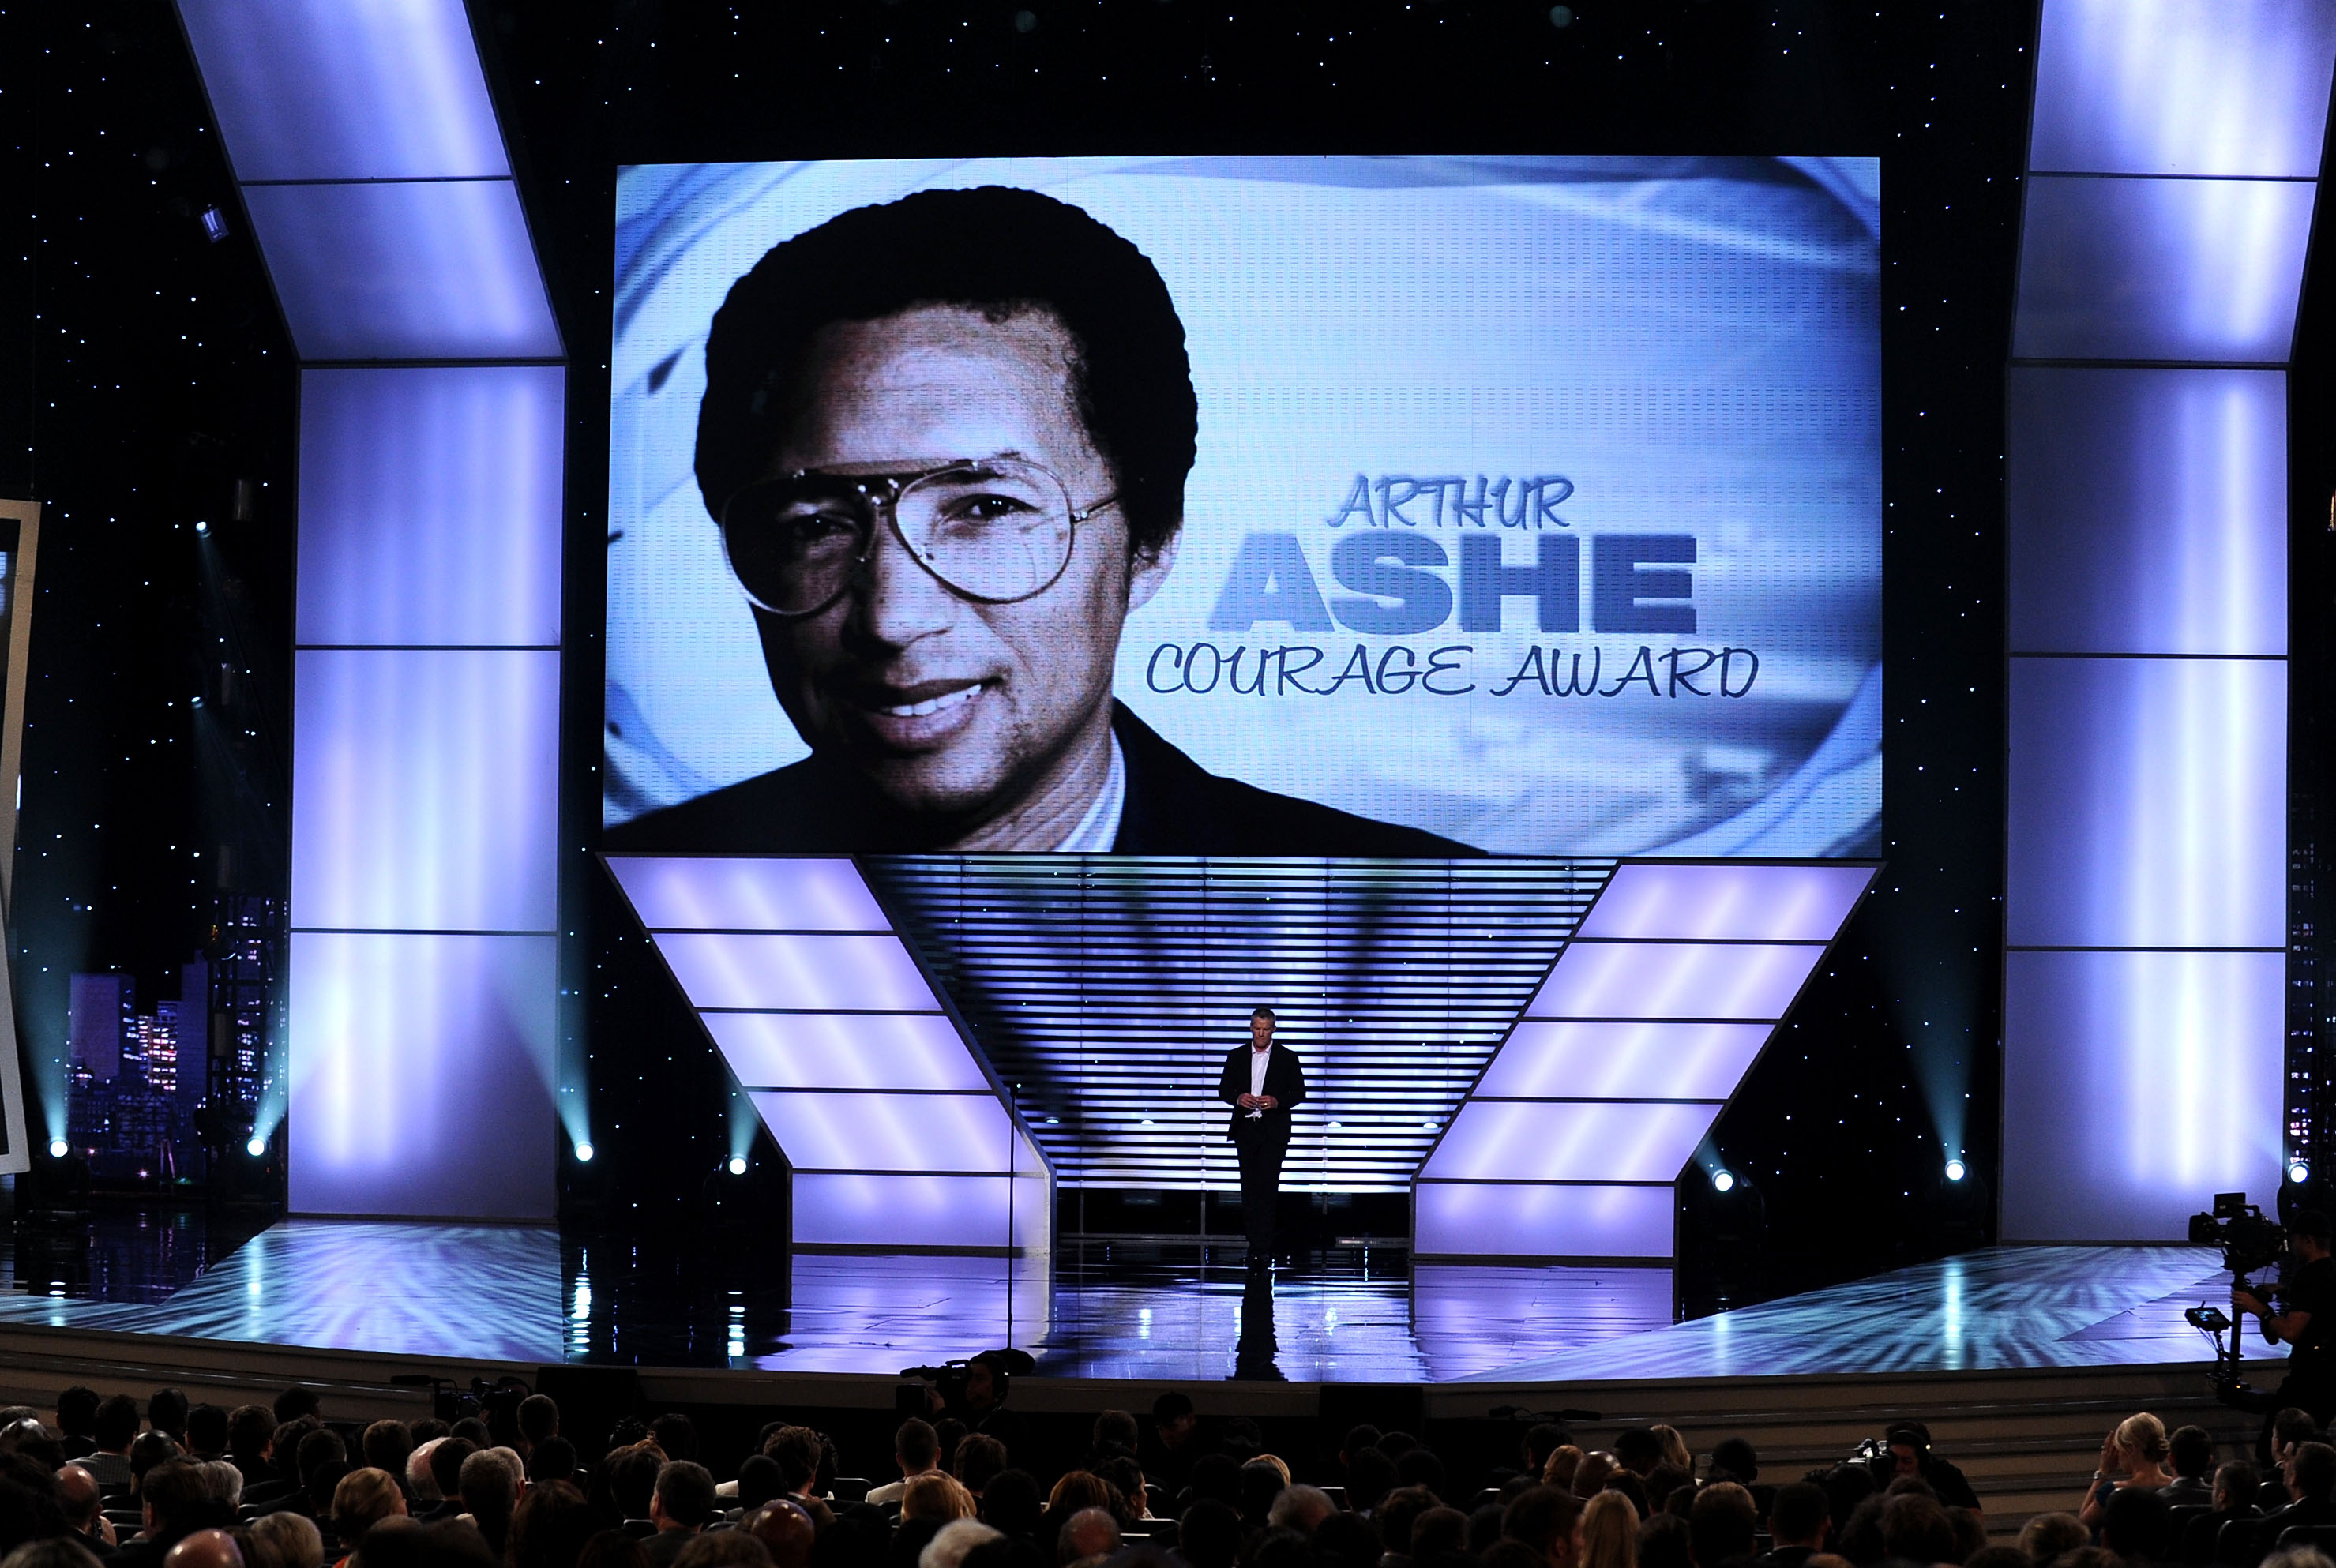 LOS ANGELES, CA - JULY 14:  Atmospher onstage during the Arthur Ashe Courage Award presentation during the 2010 ESPY Awards at Nokia Theatre L.A. Live on July 14, 2010 in Los Angeles, California.  (Photo by Kevin Winter/Getty Images)